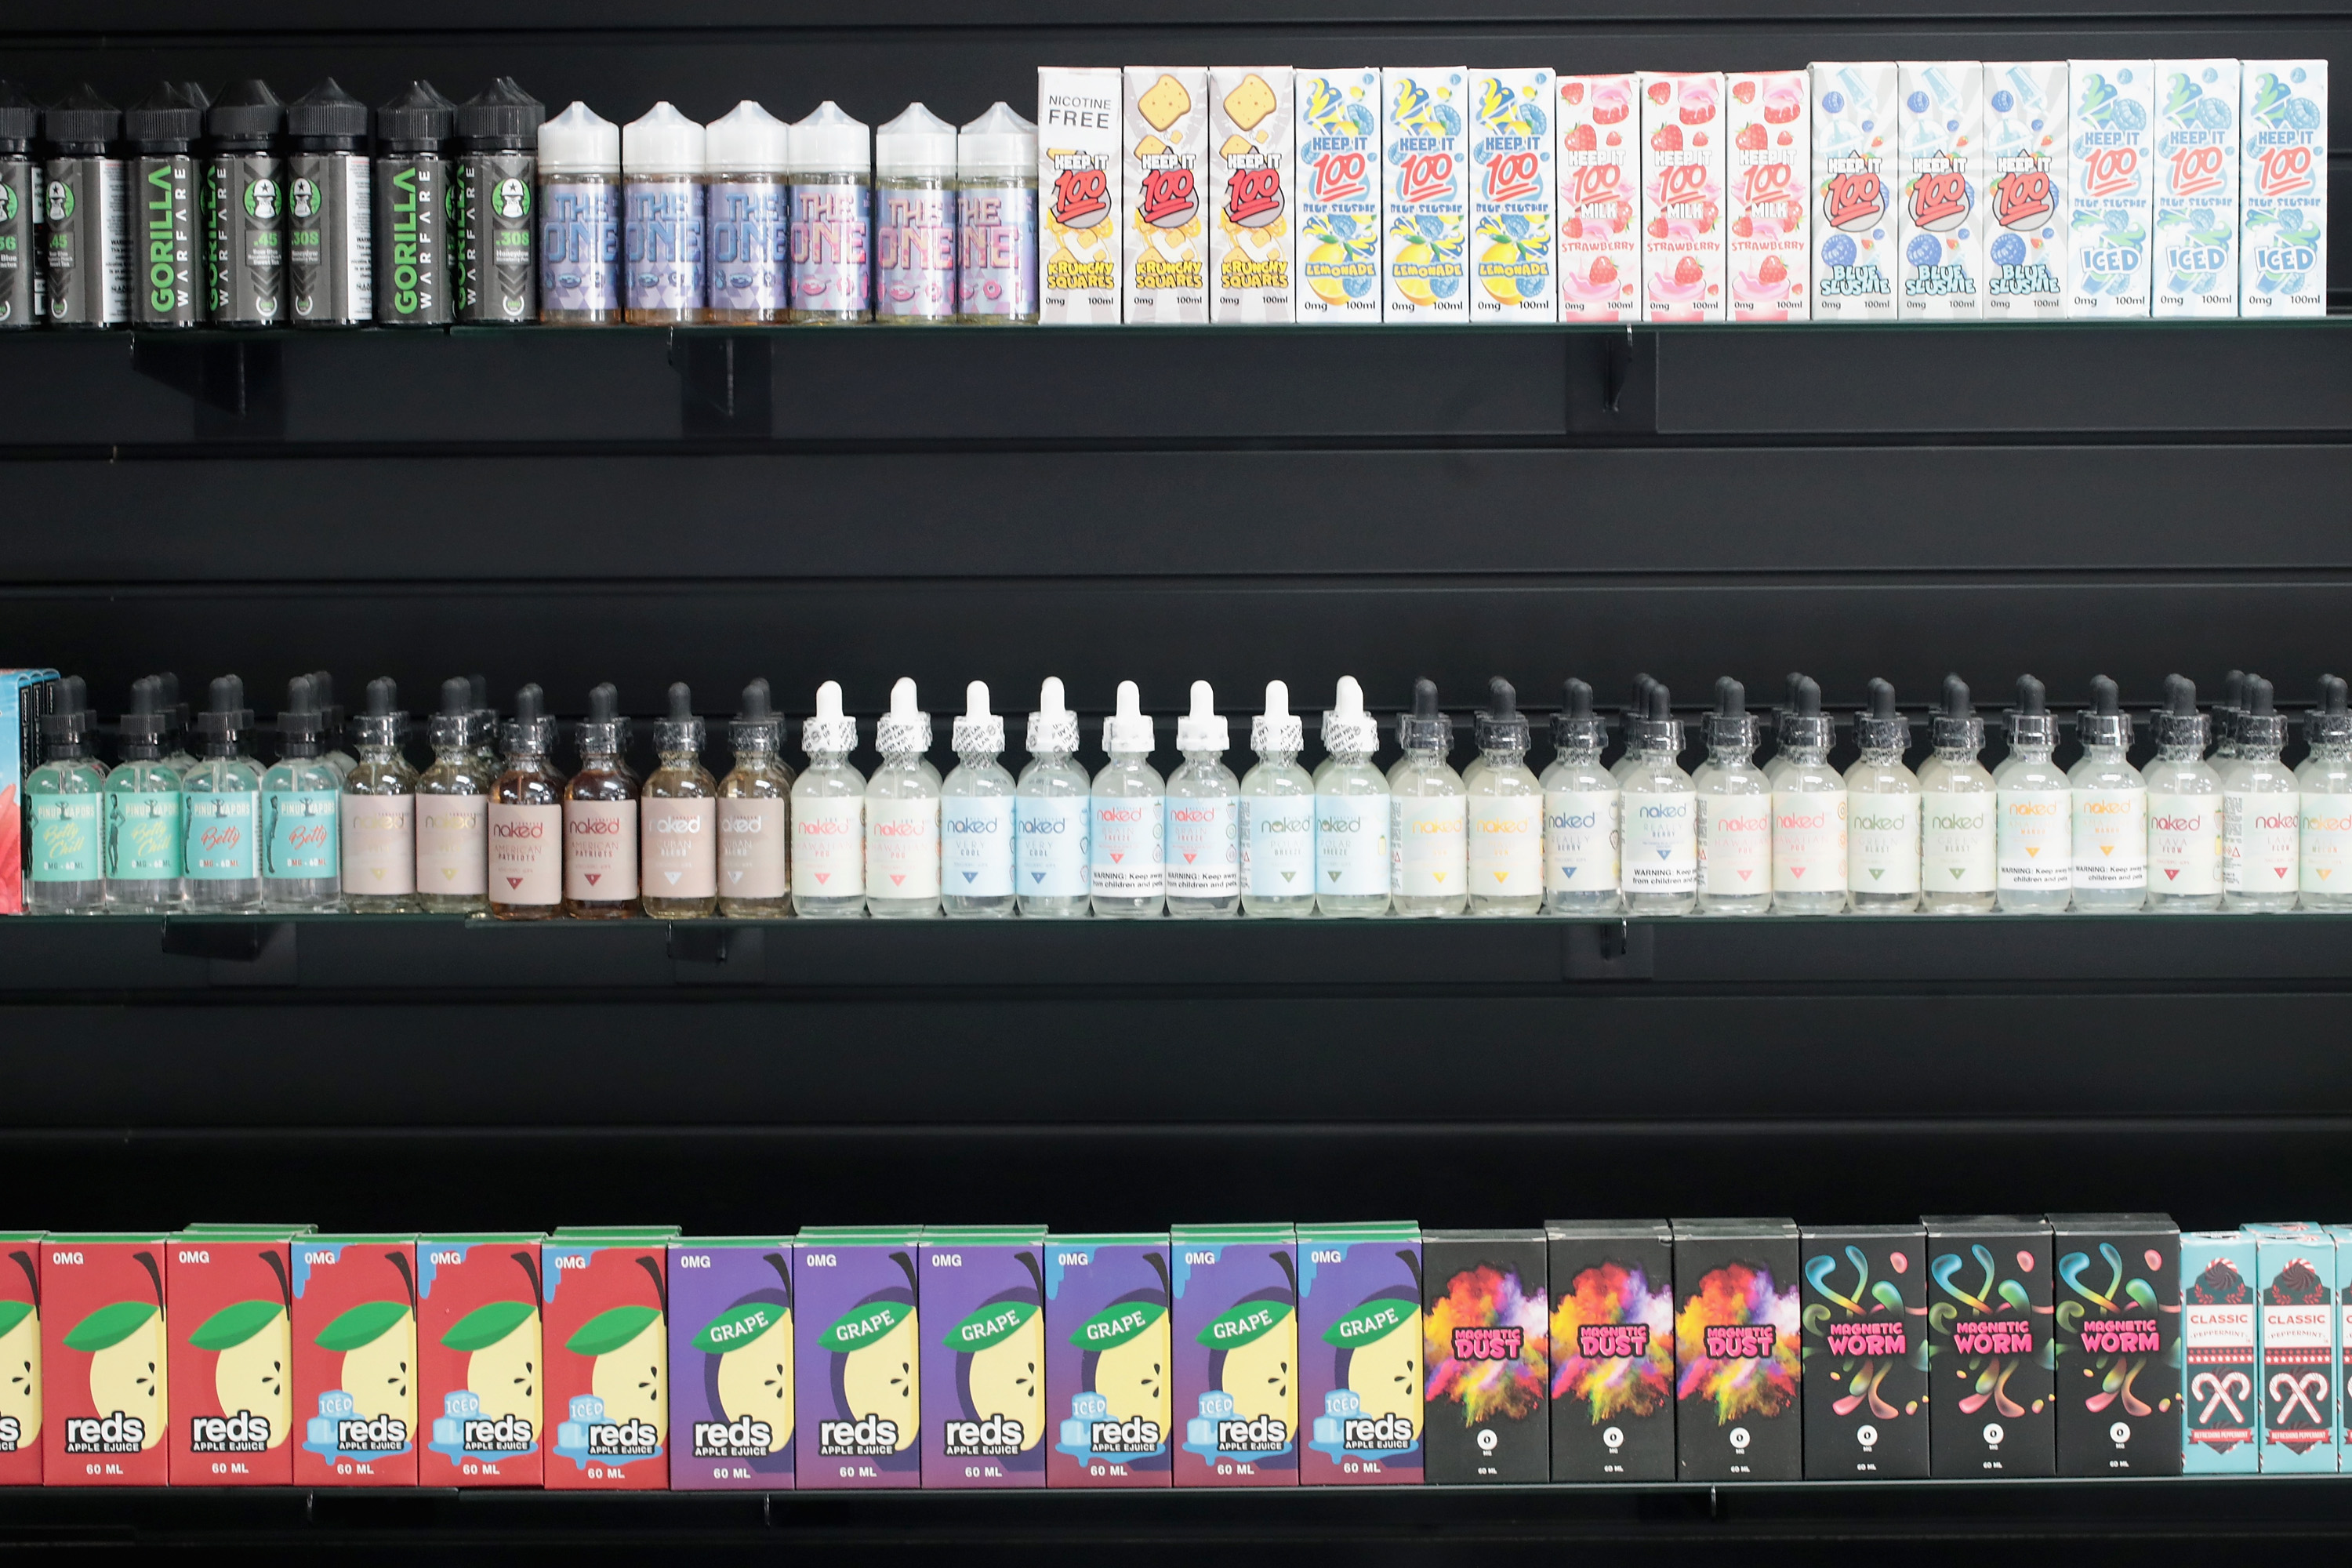 E-Liquids, which are used for vaping in electronic cigarettes, are offered for sale at the Smoke Depot on September 13, 2018 in Chicago, Illinois. (Photo by Scott Olson/Getty Images)